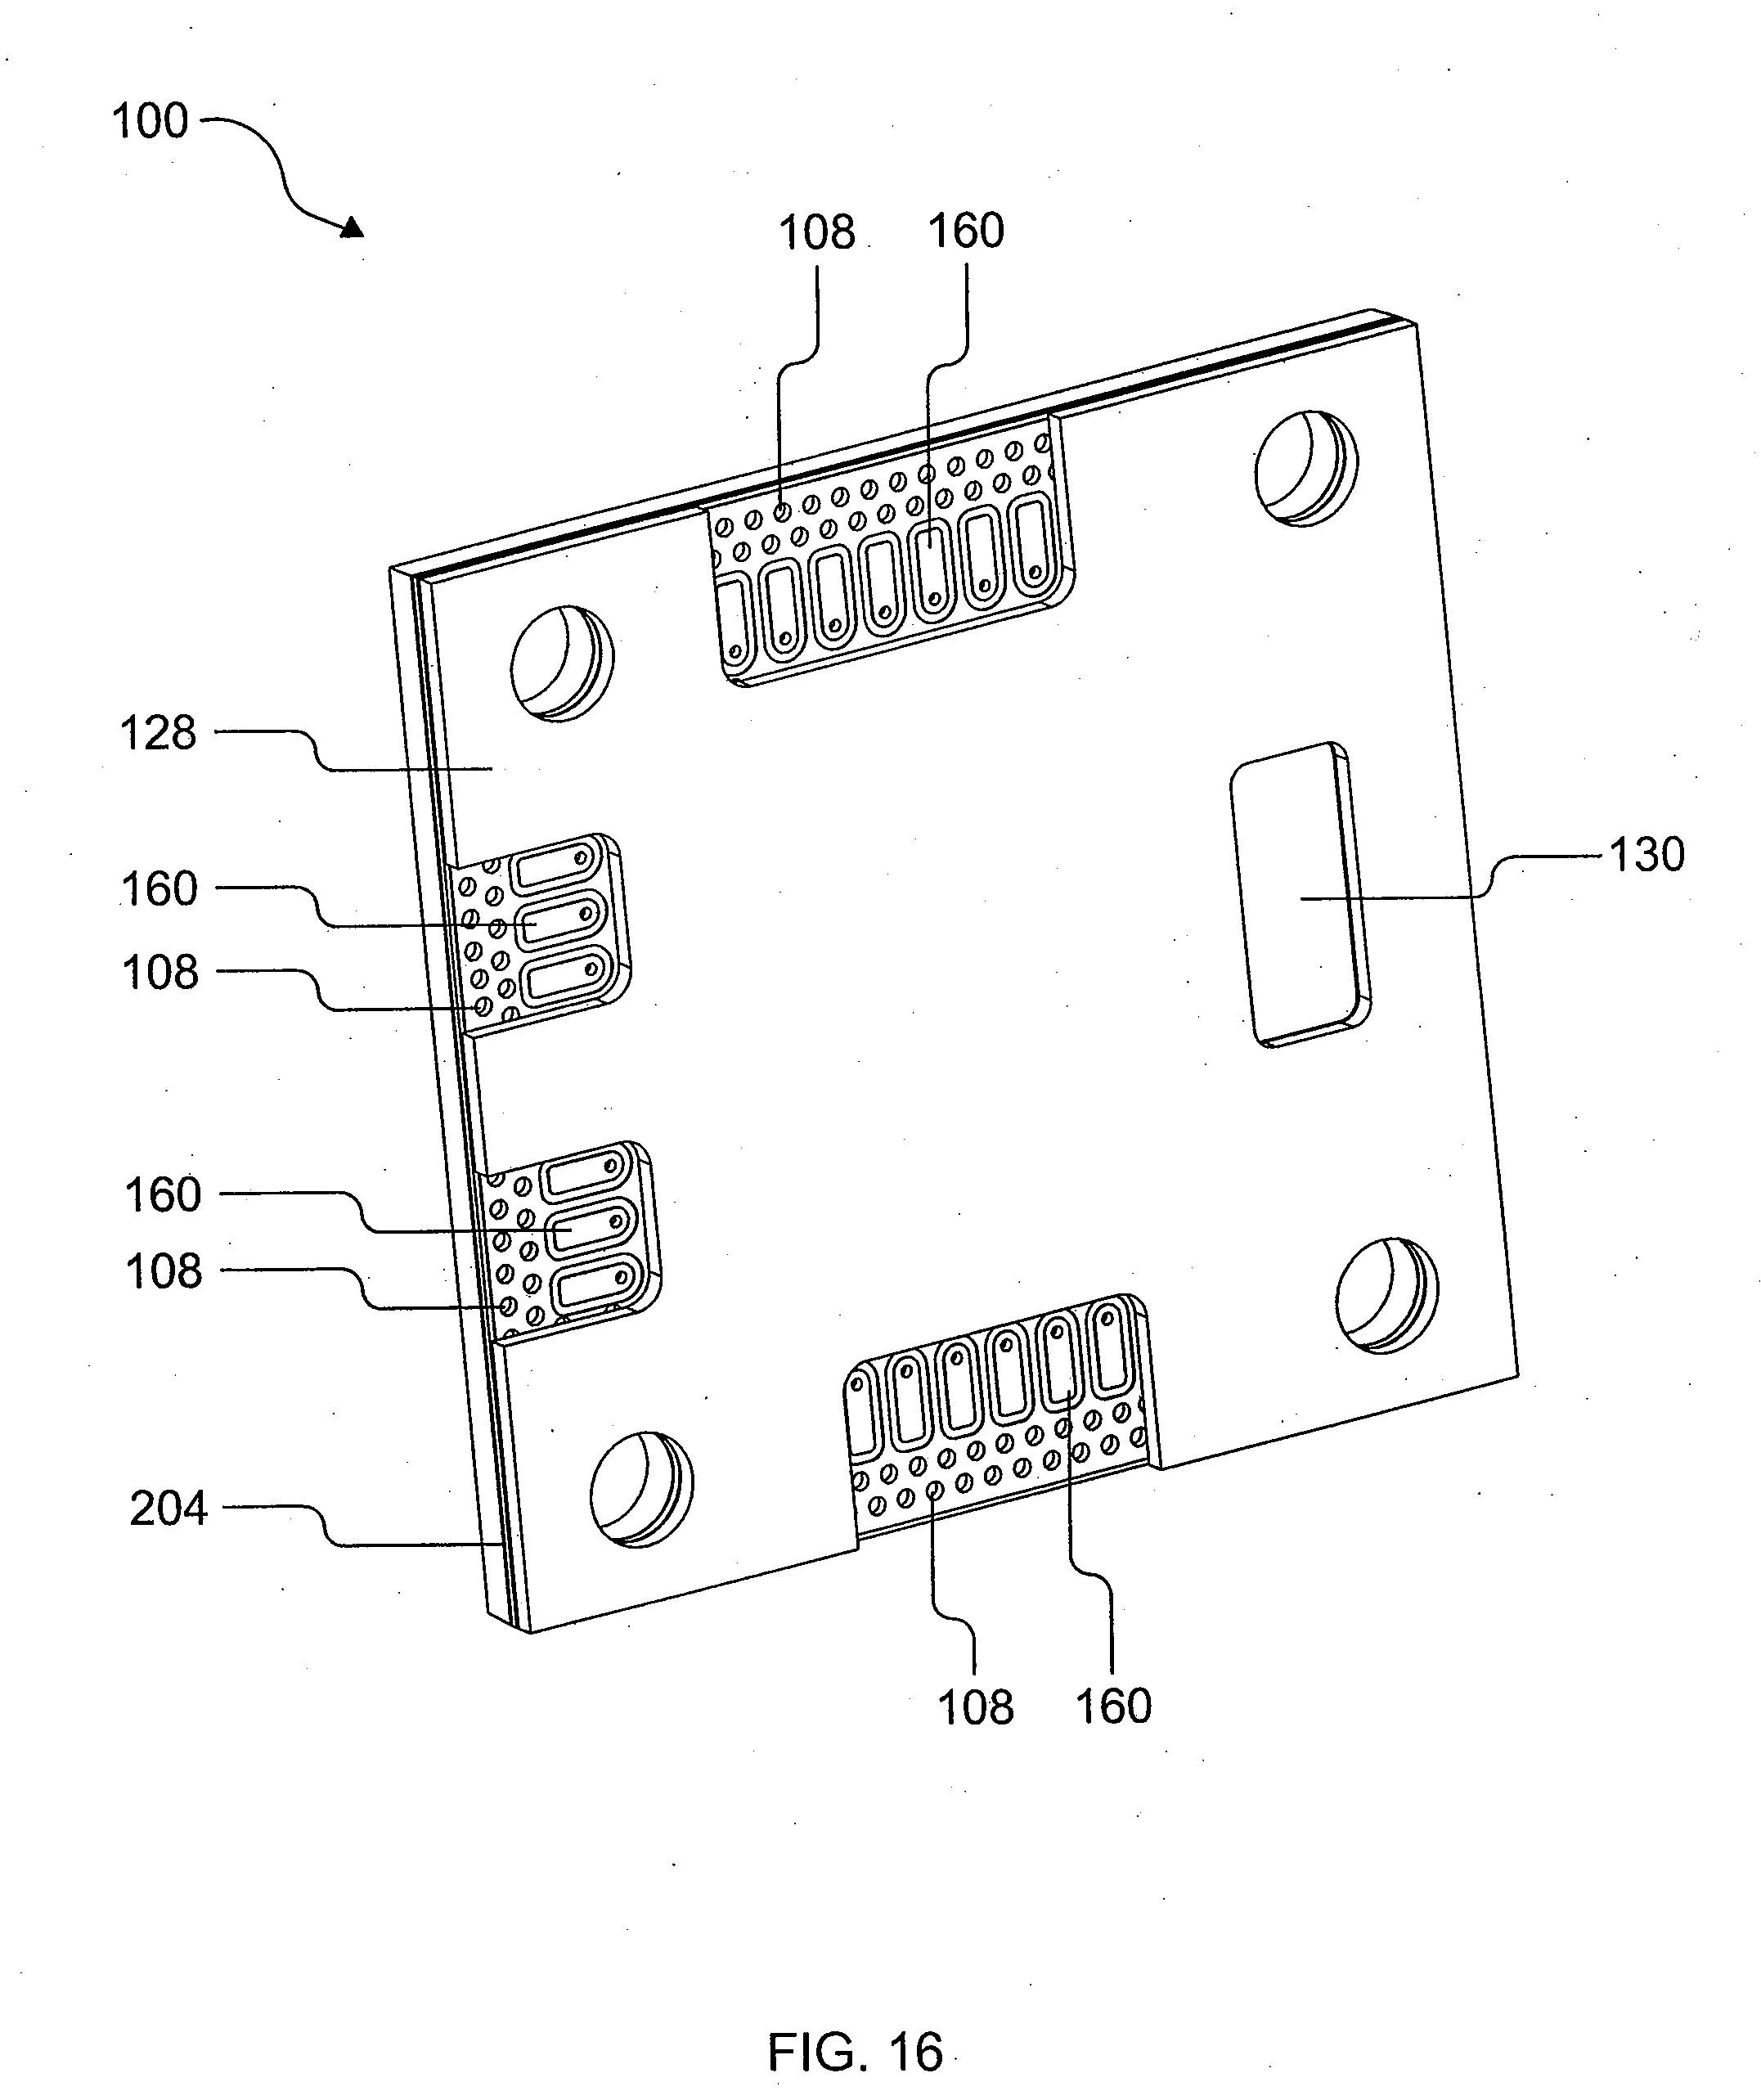 patent us20090206473 - system and method for integrated waveguide packaging